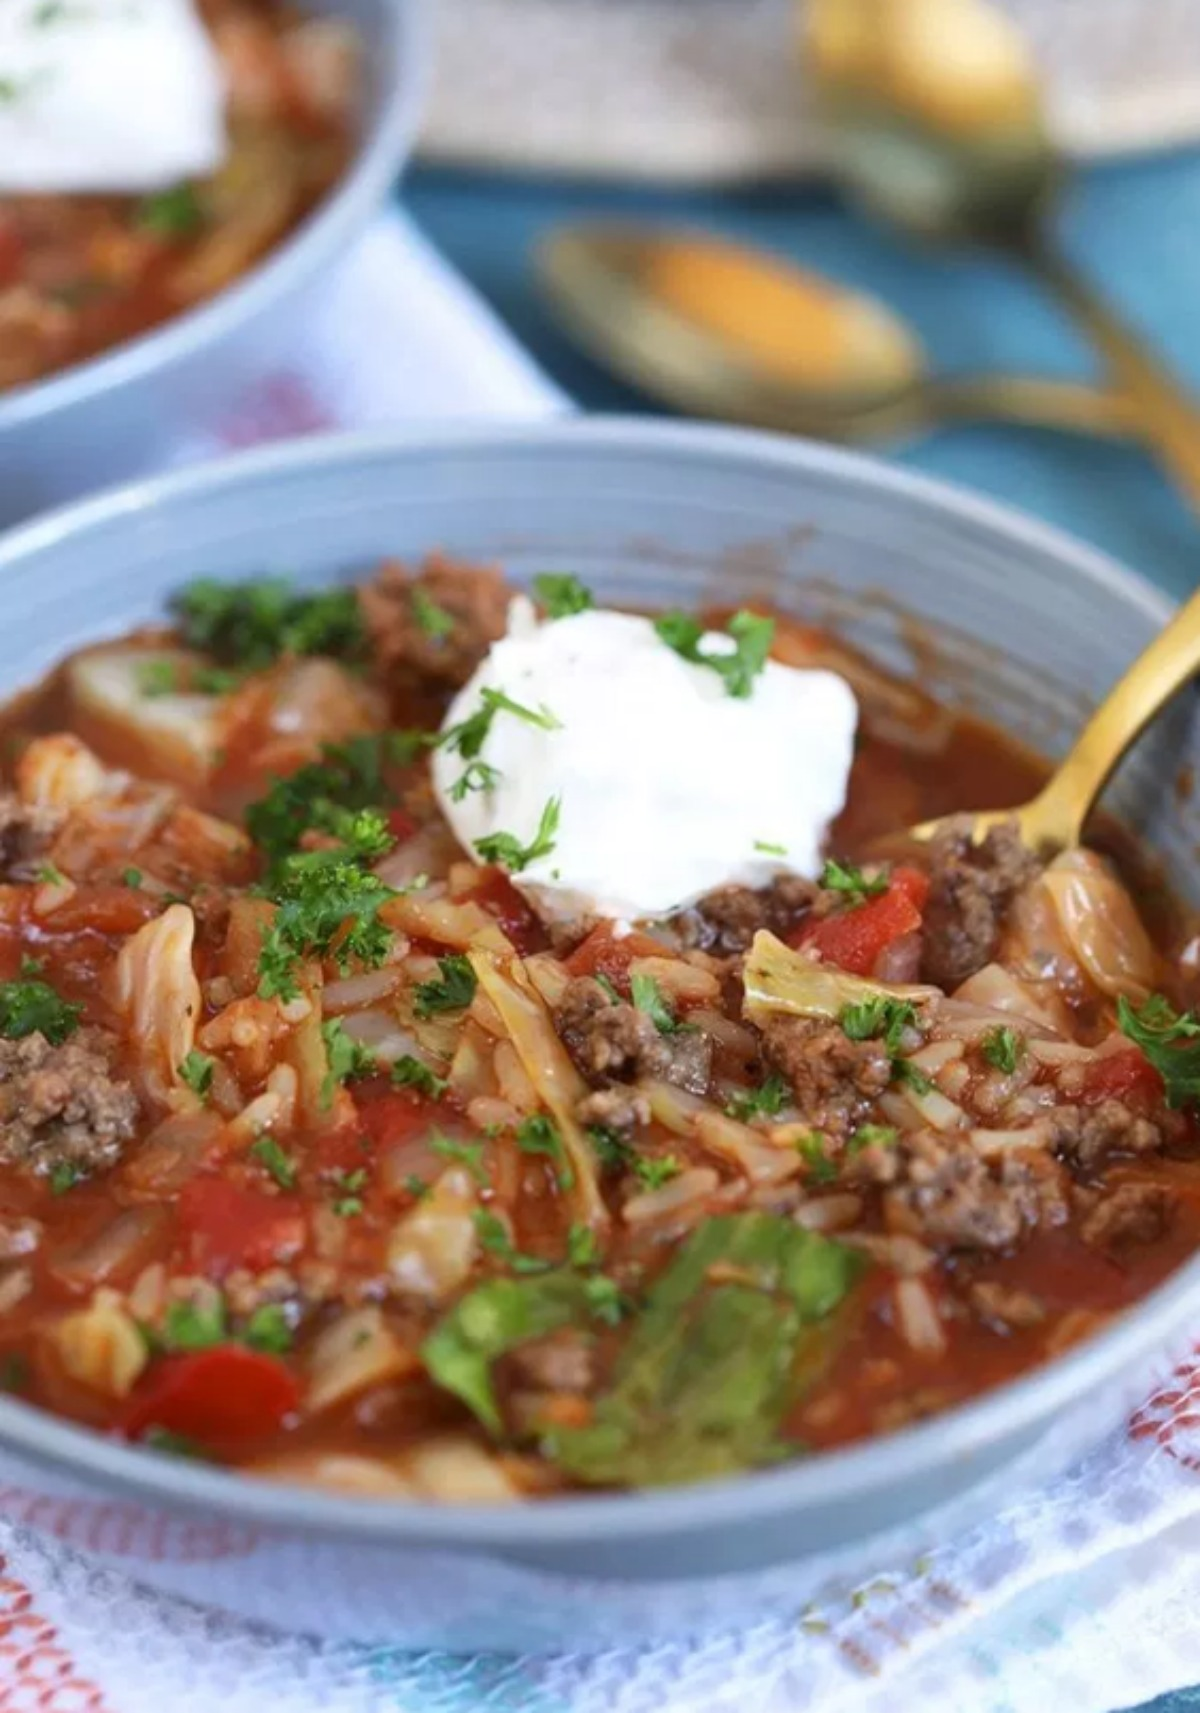 The Very Best Stuffed Cabbage Soup Recipe